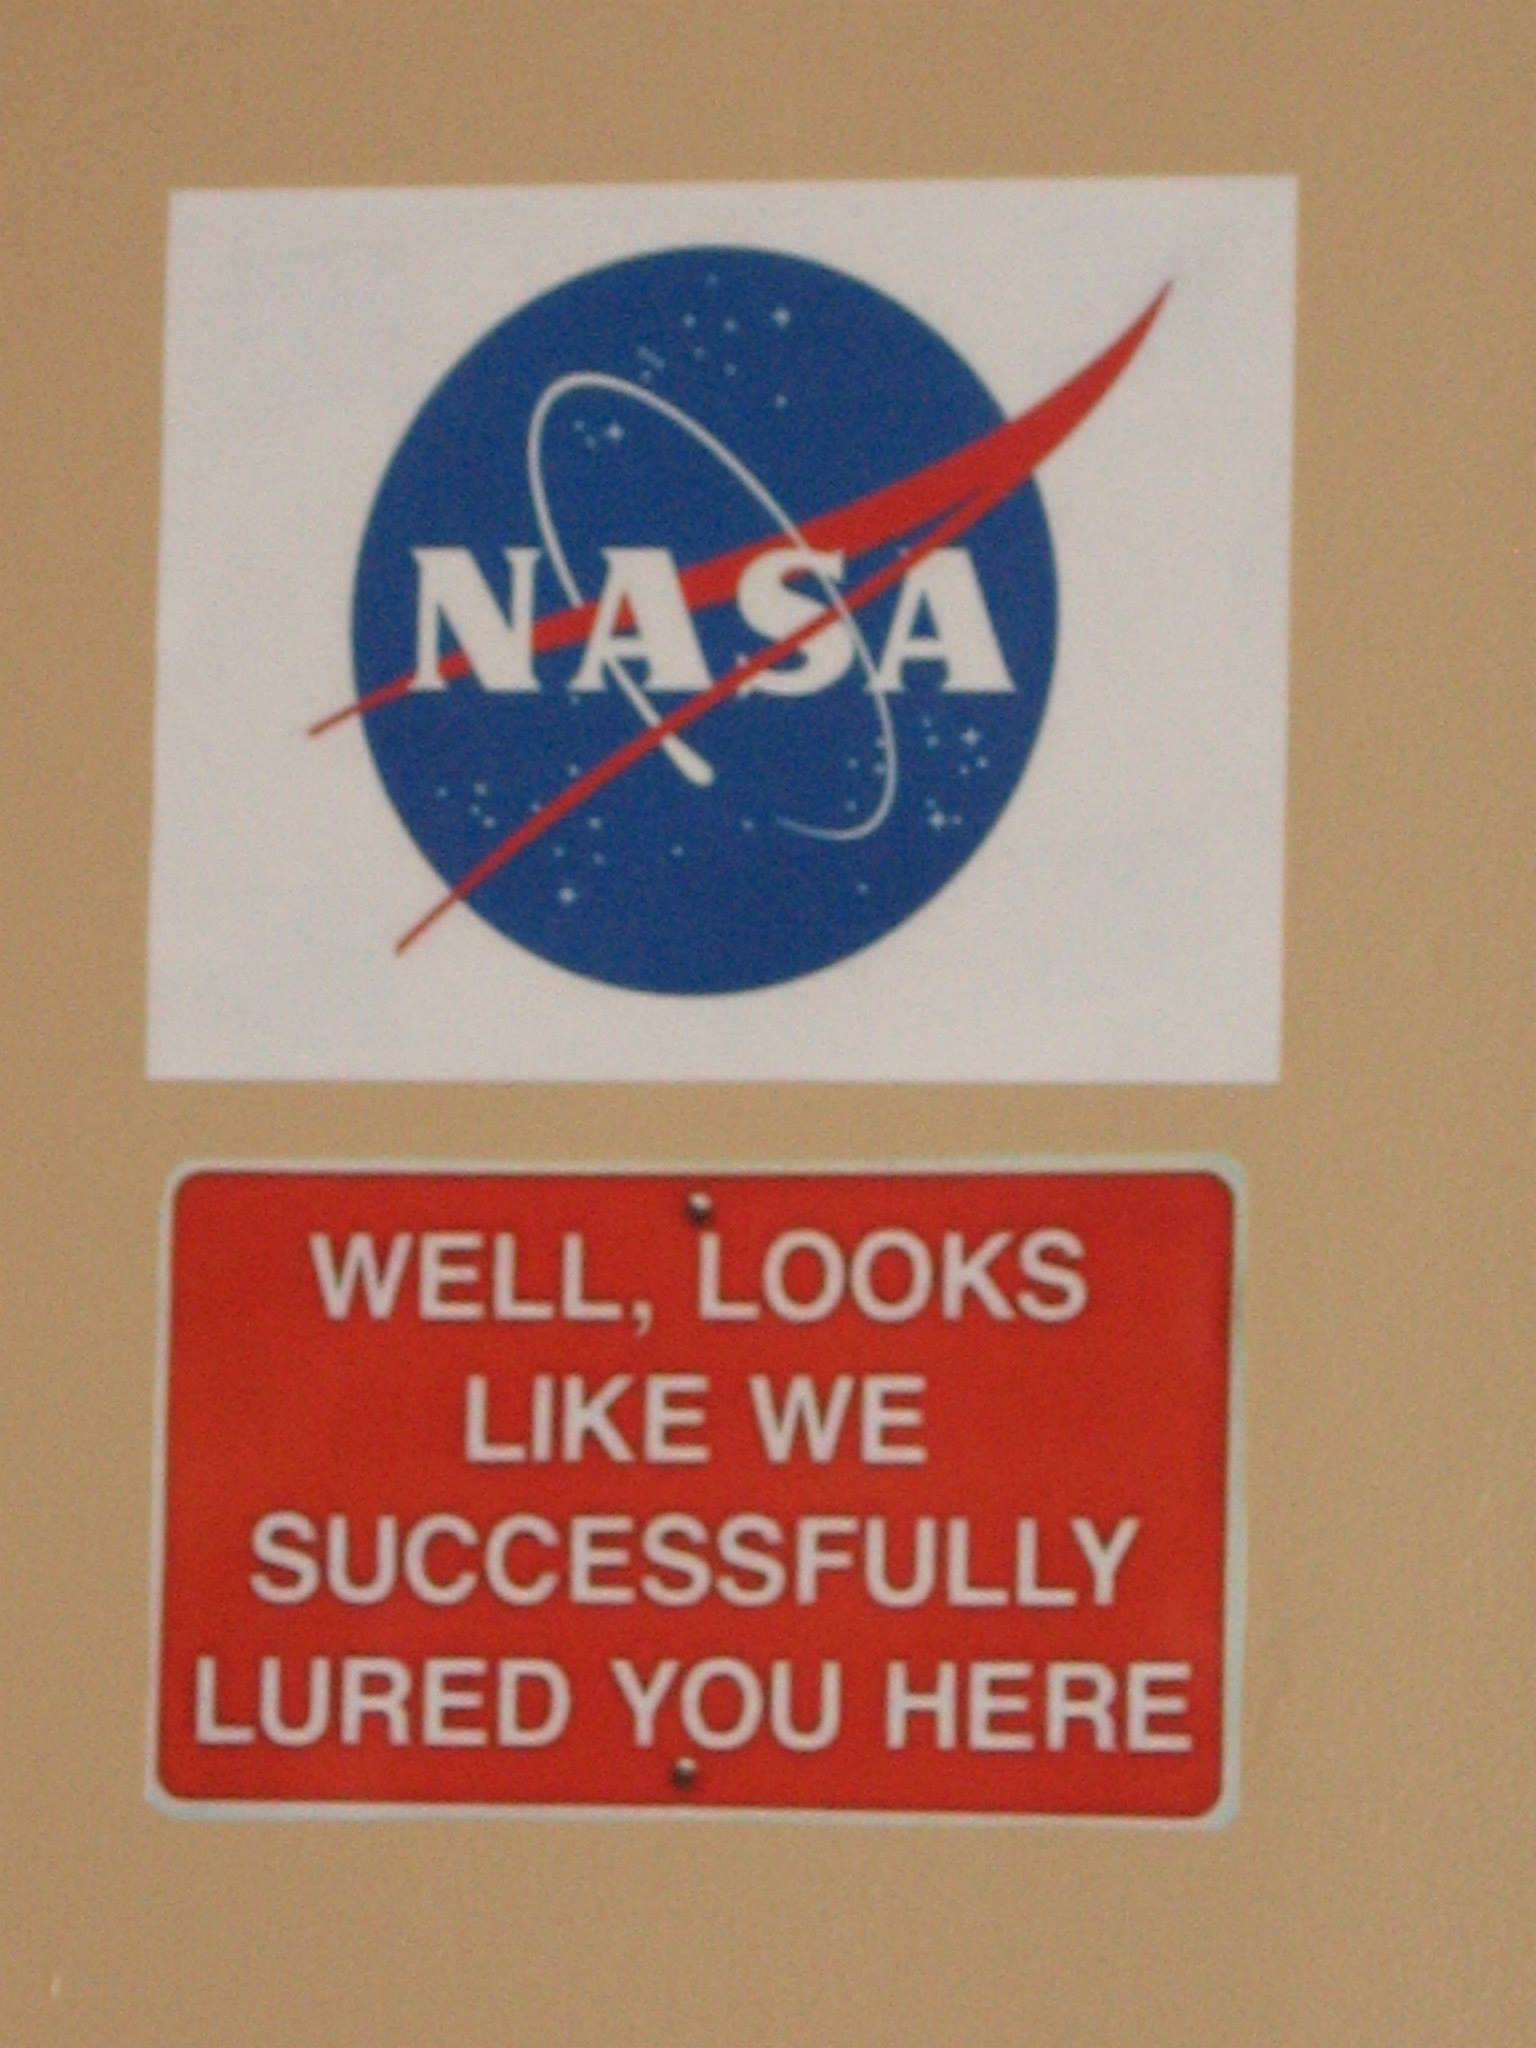 NASA symbol with sign beneath that reads Well, looks like we successfully lured you here.